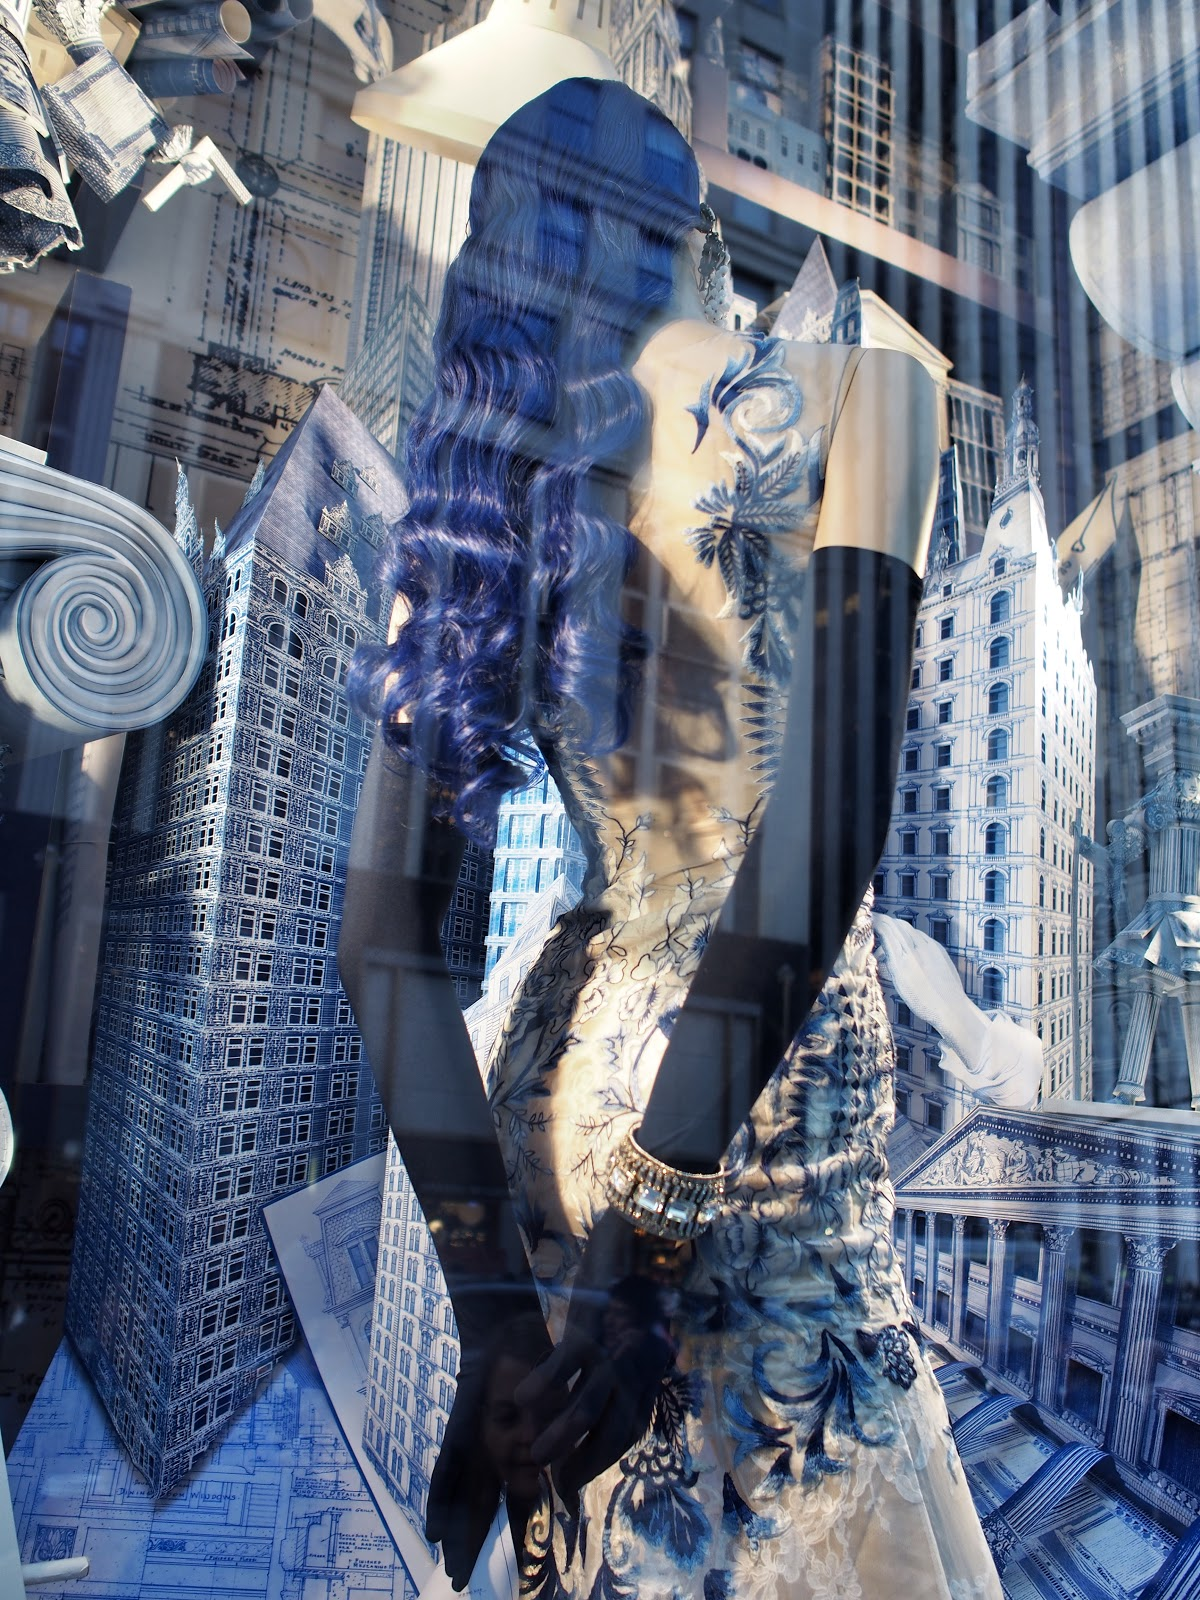 Blue-Haired Lady #bluehairedlady  #bgwindows #5thavenuewindows #holidaysinNYC #besttimeoftheyear  ©2014 Nancy Lundebjerg